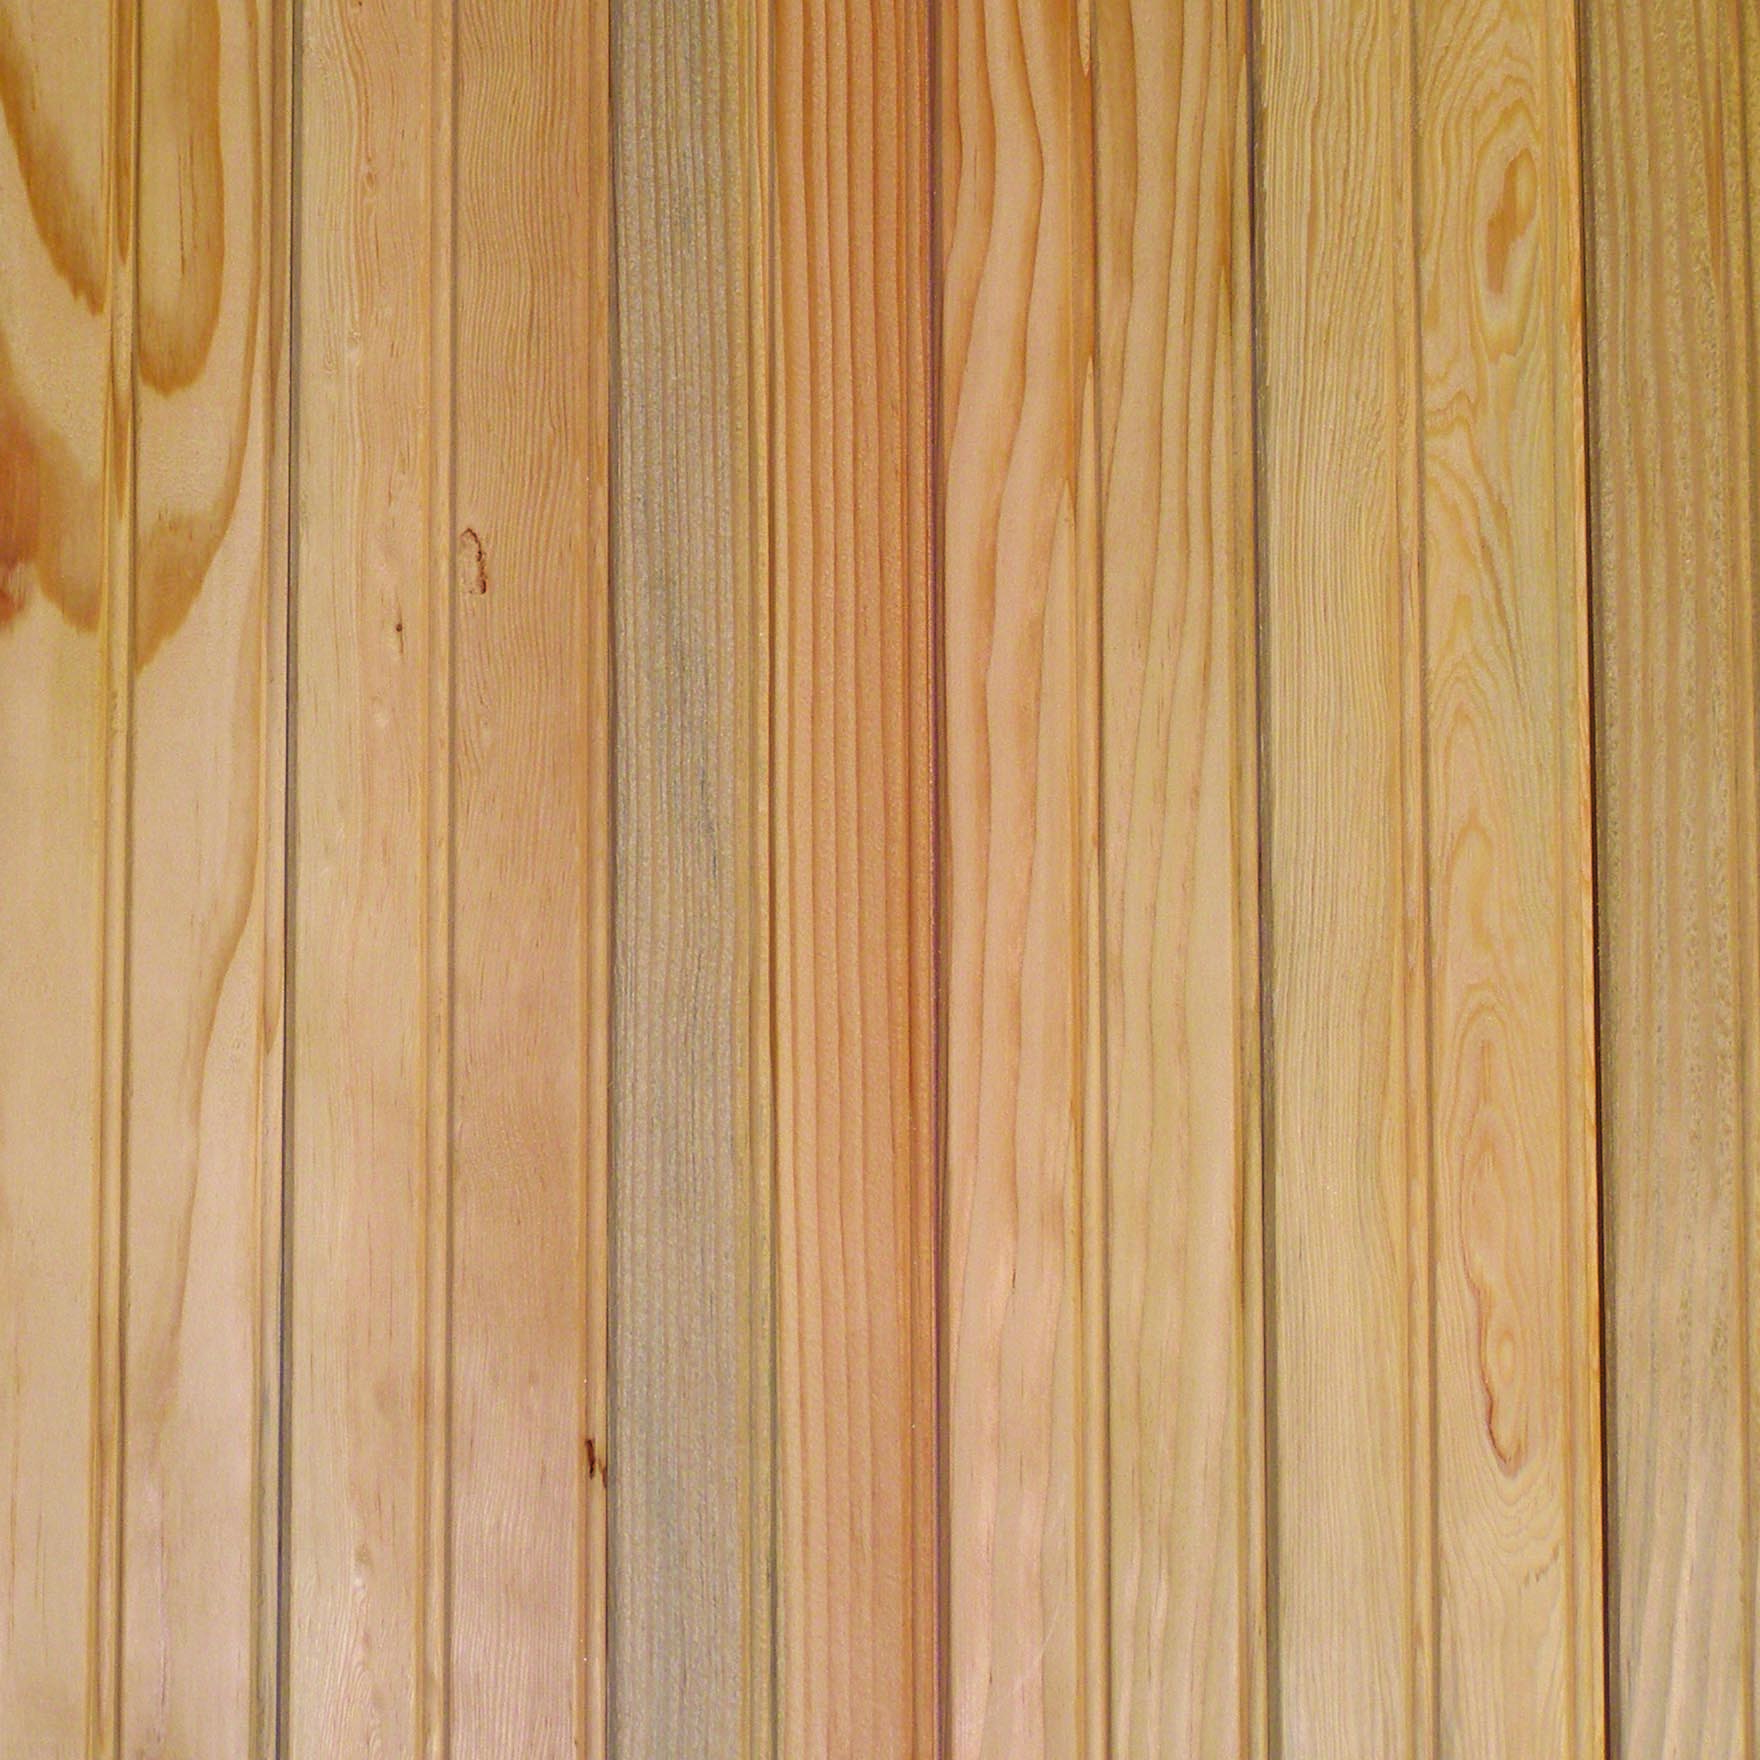 Clear Douglas Fir Finish & Pattern